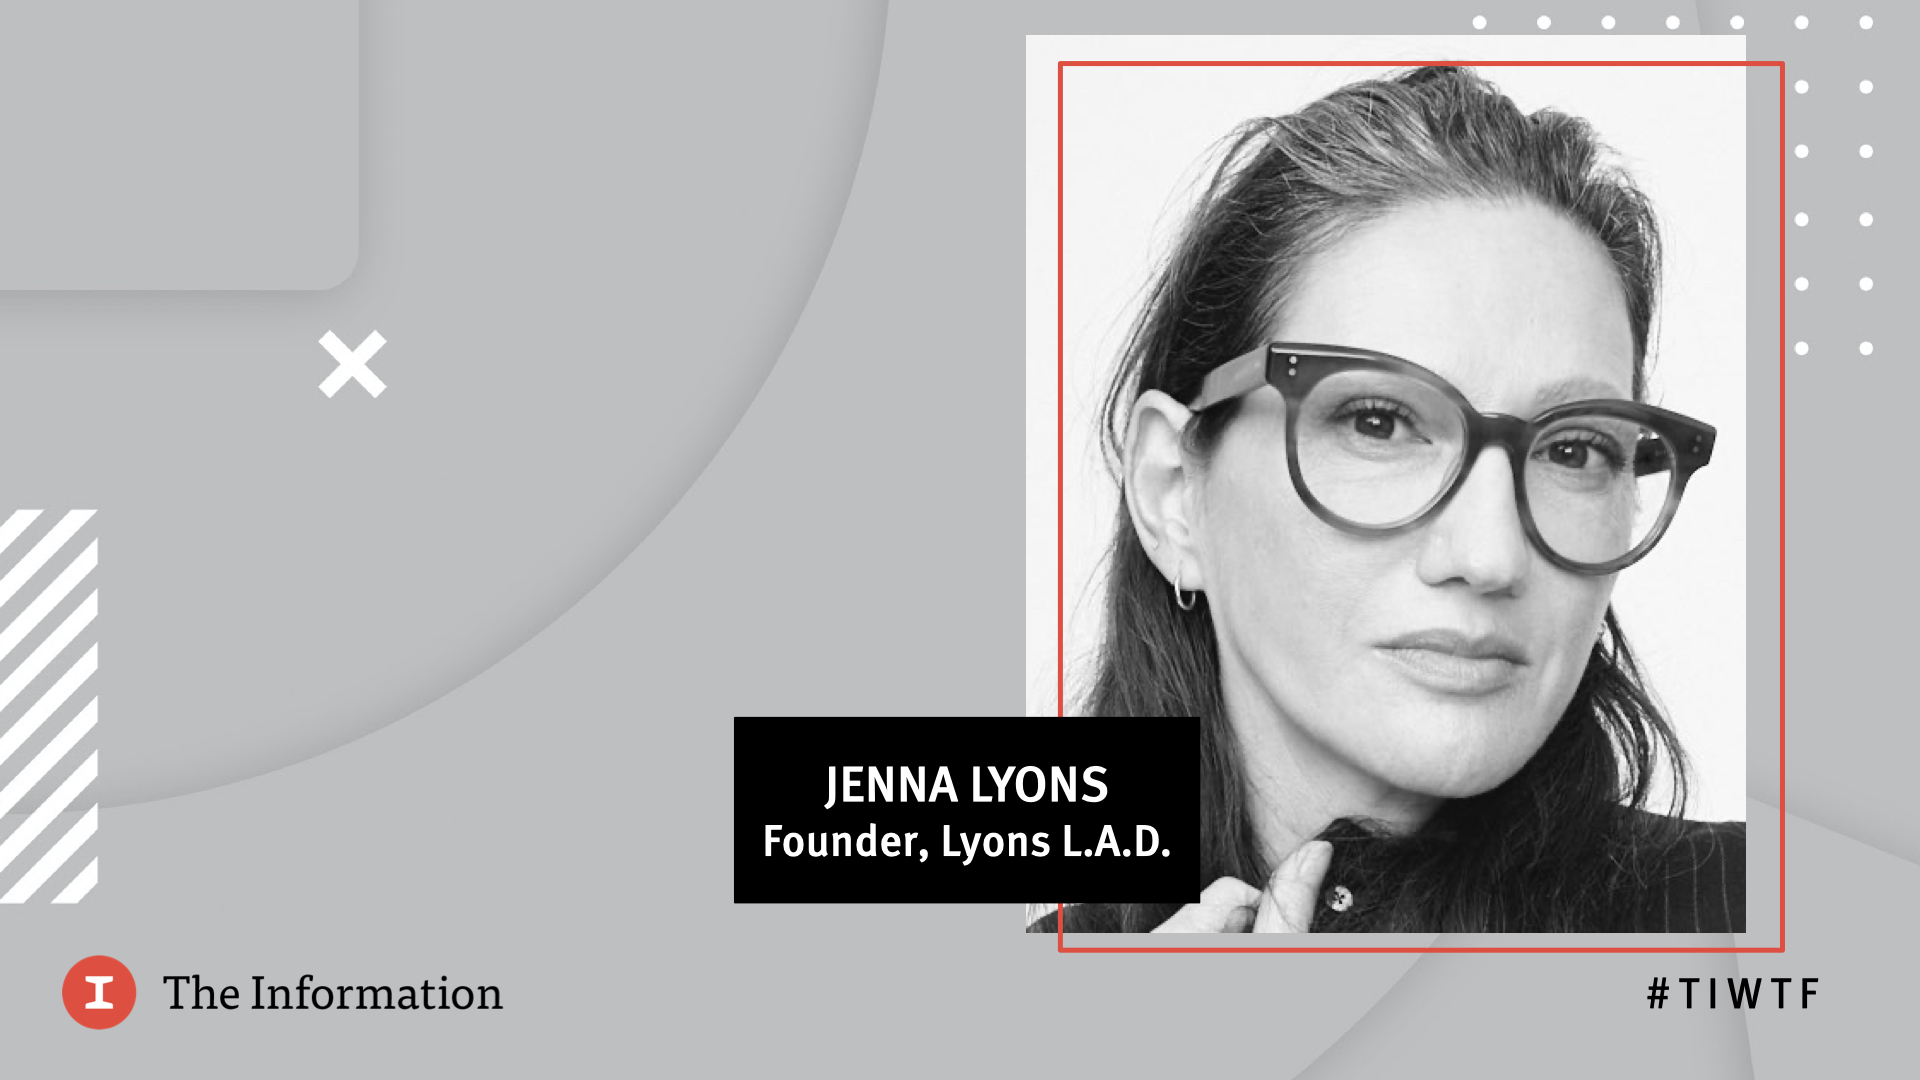 WTF 2020 - Lyons L.A.D.'s Founder Jenna Lyons  in conversation with Jessica Lessin, Founder & CEO of The Information